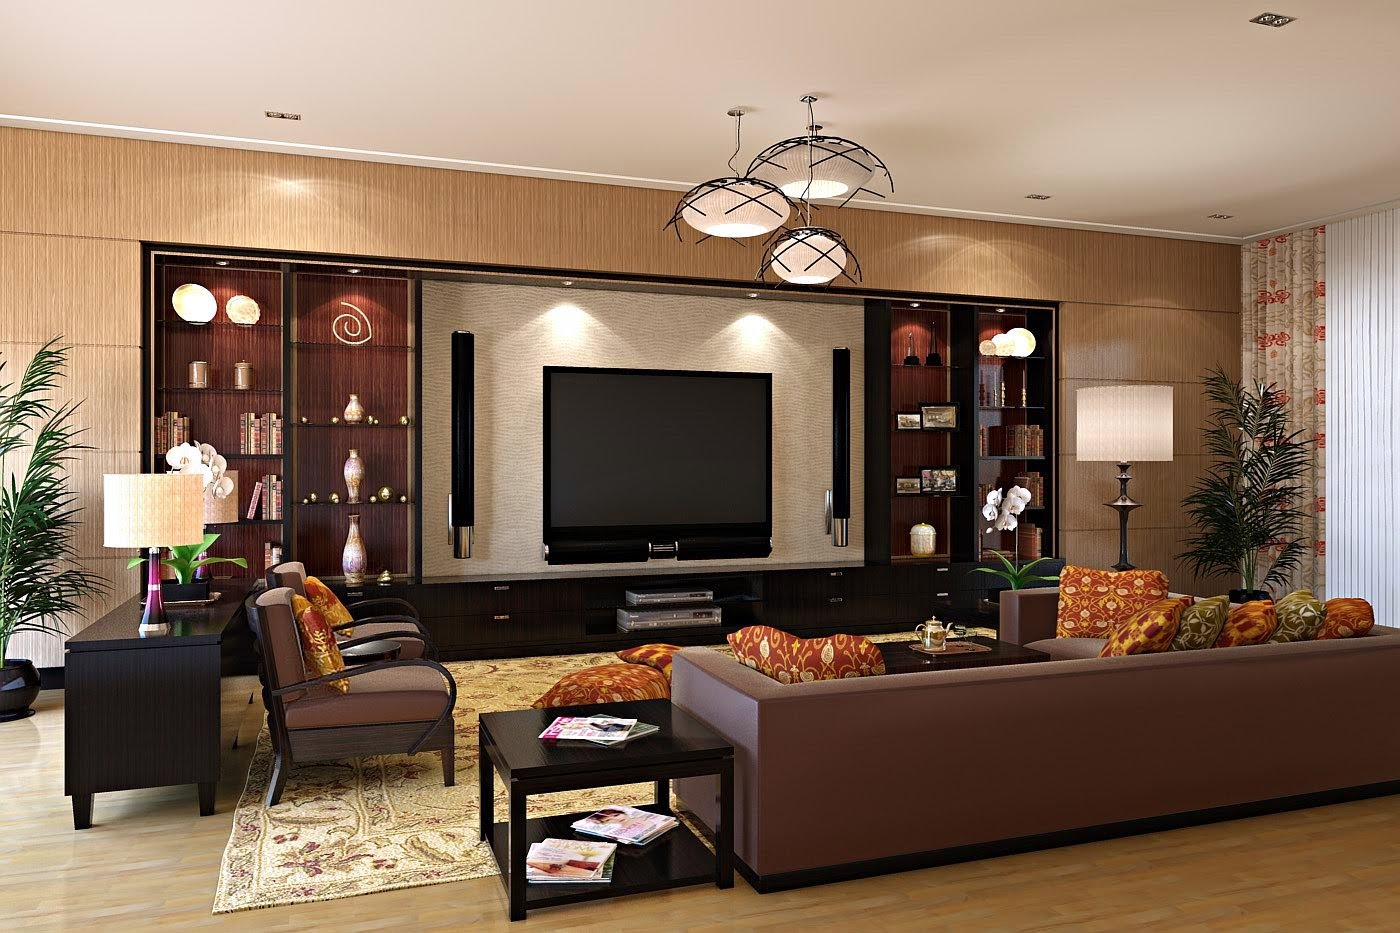 20 modern tv unit design ideas for bedroom living room for Bedroom ideas tv